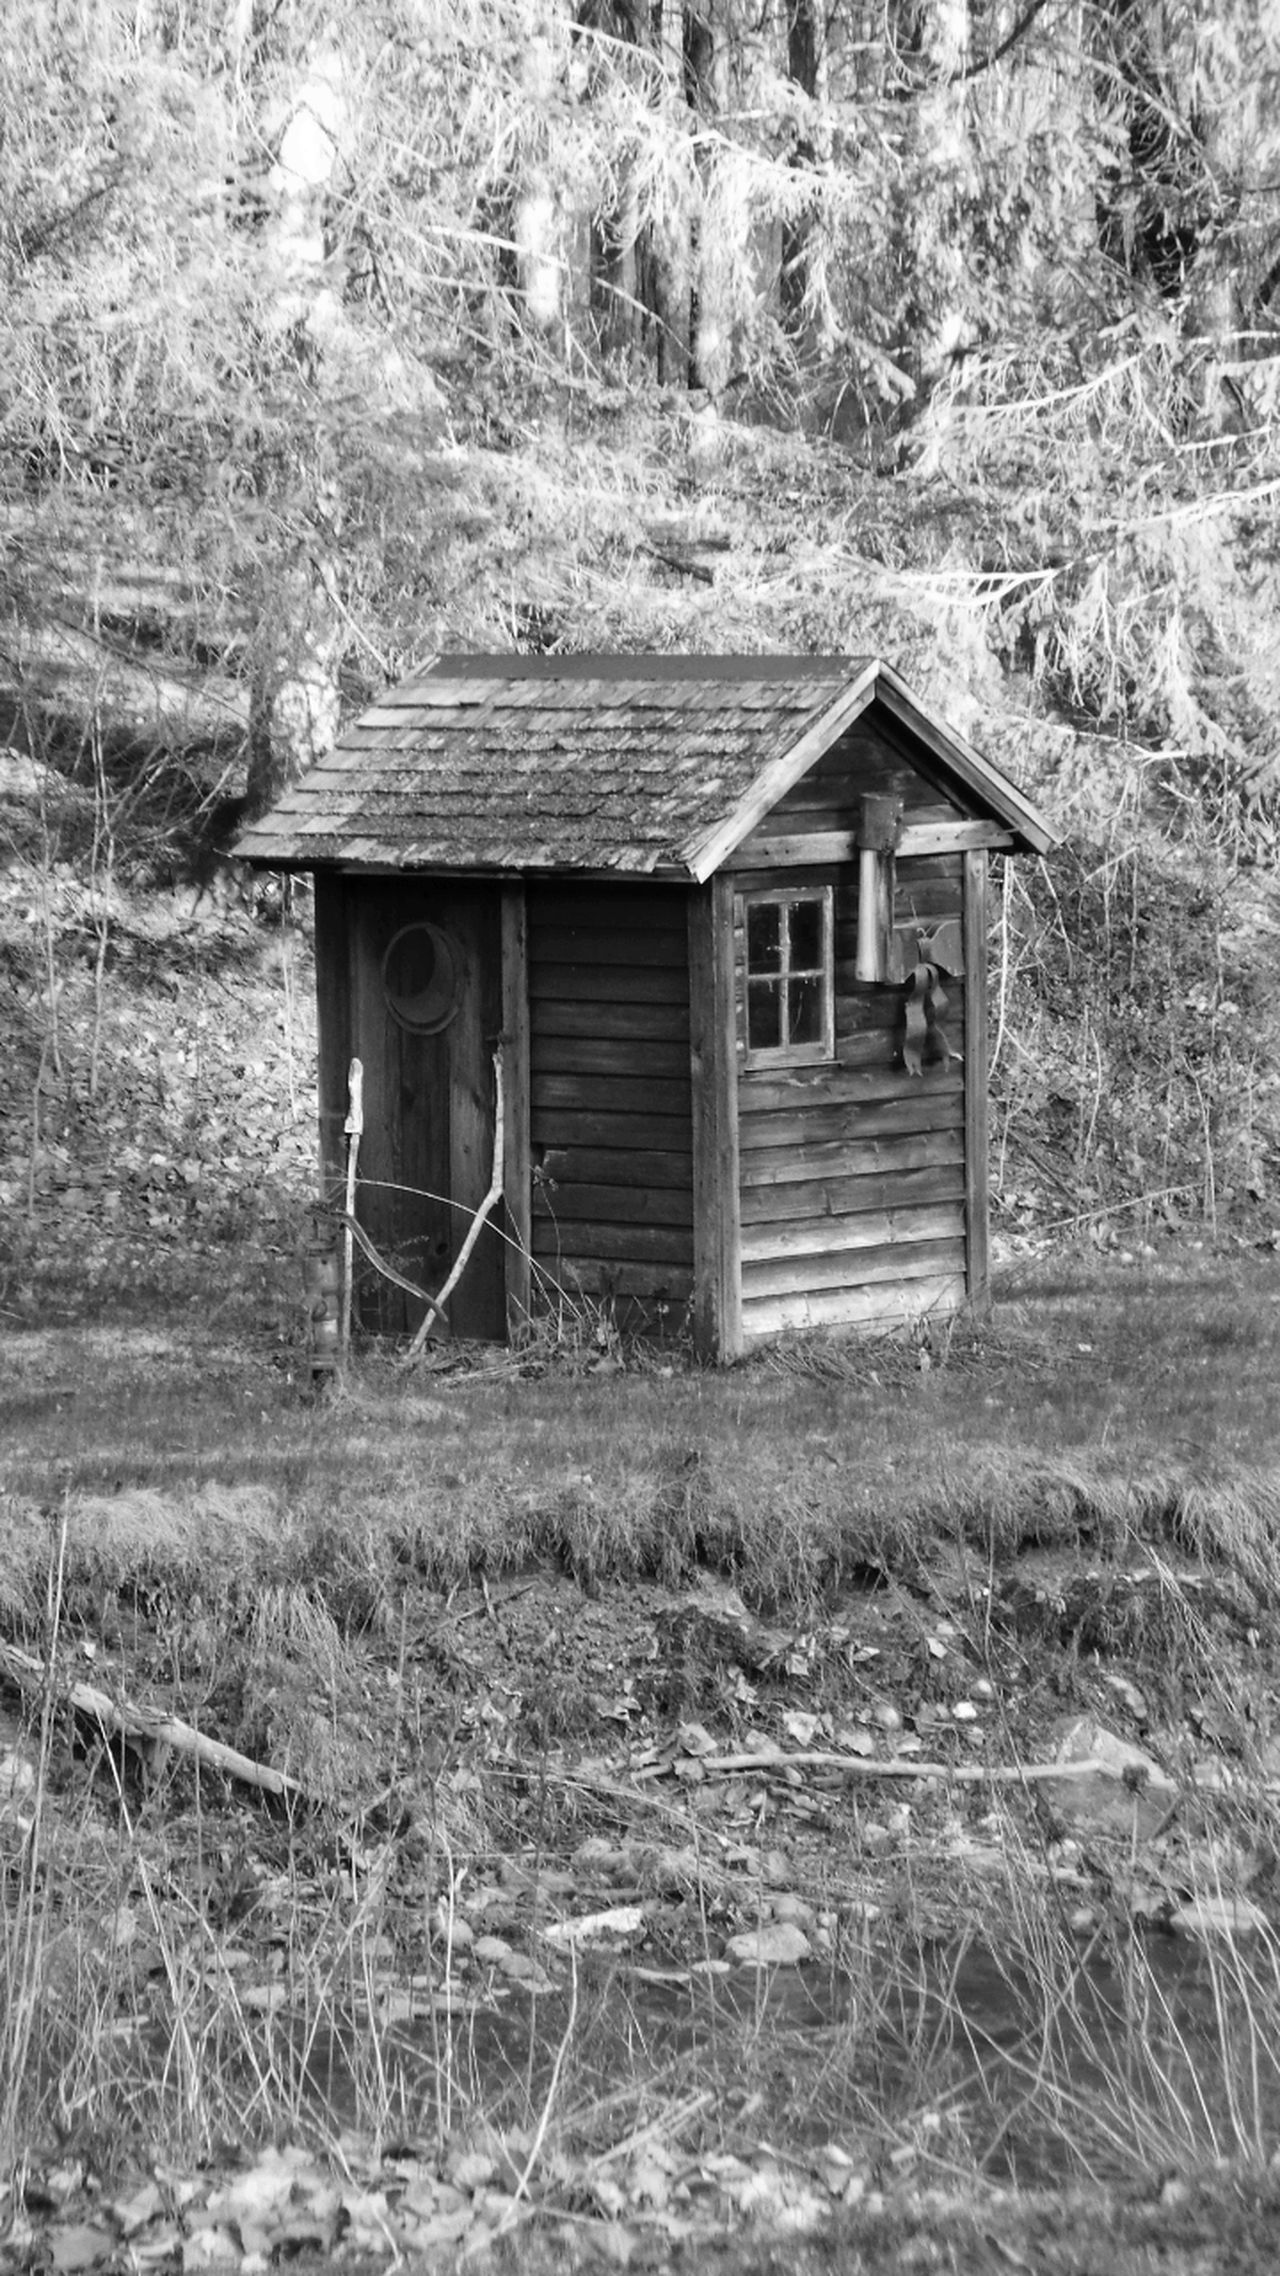 Little House On The Prairie Little House In The Woods Worn Out & Wonderful  Black And White Shot Black And White Collection  Blackandwhite Whiteandblack Blackandwhite Photography Black And White Photography Tell A Story Monochrome By The River Black And White Nature Black And White Collection! Black And White Architecture